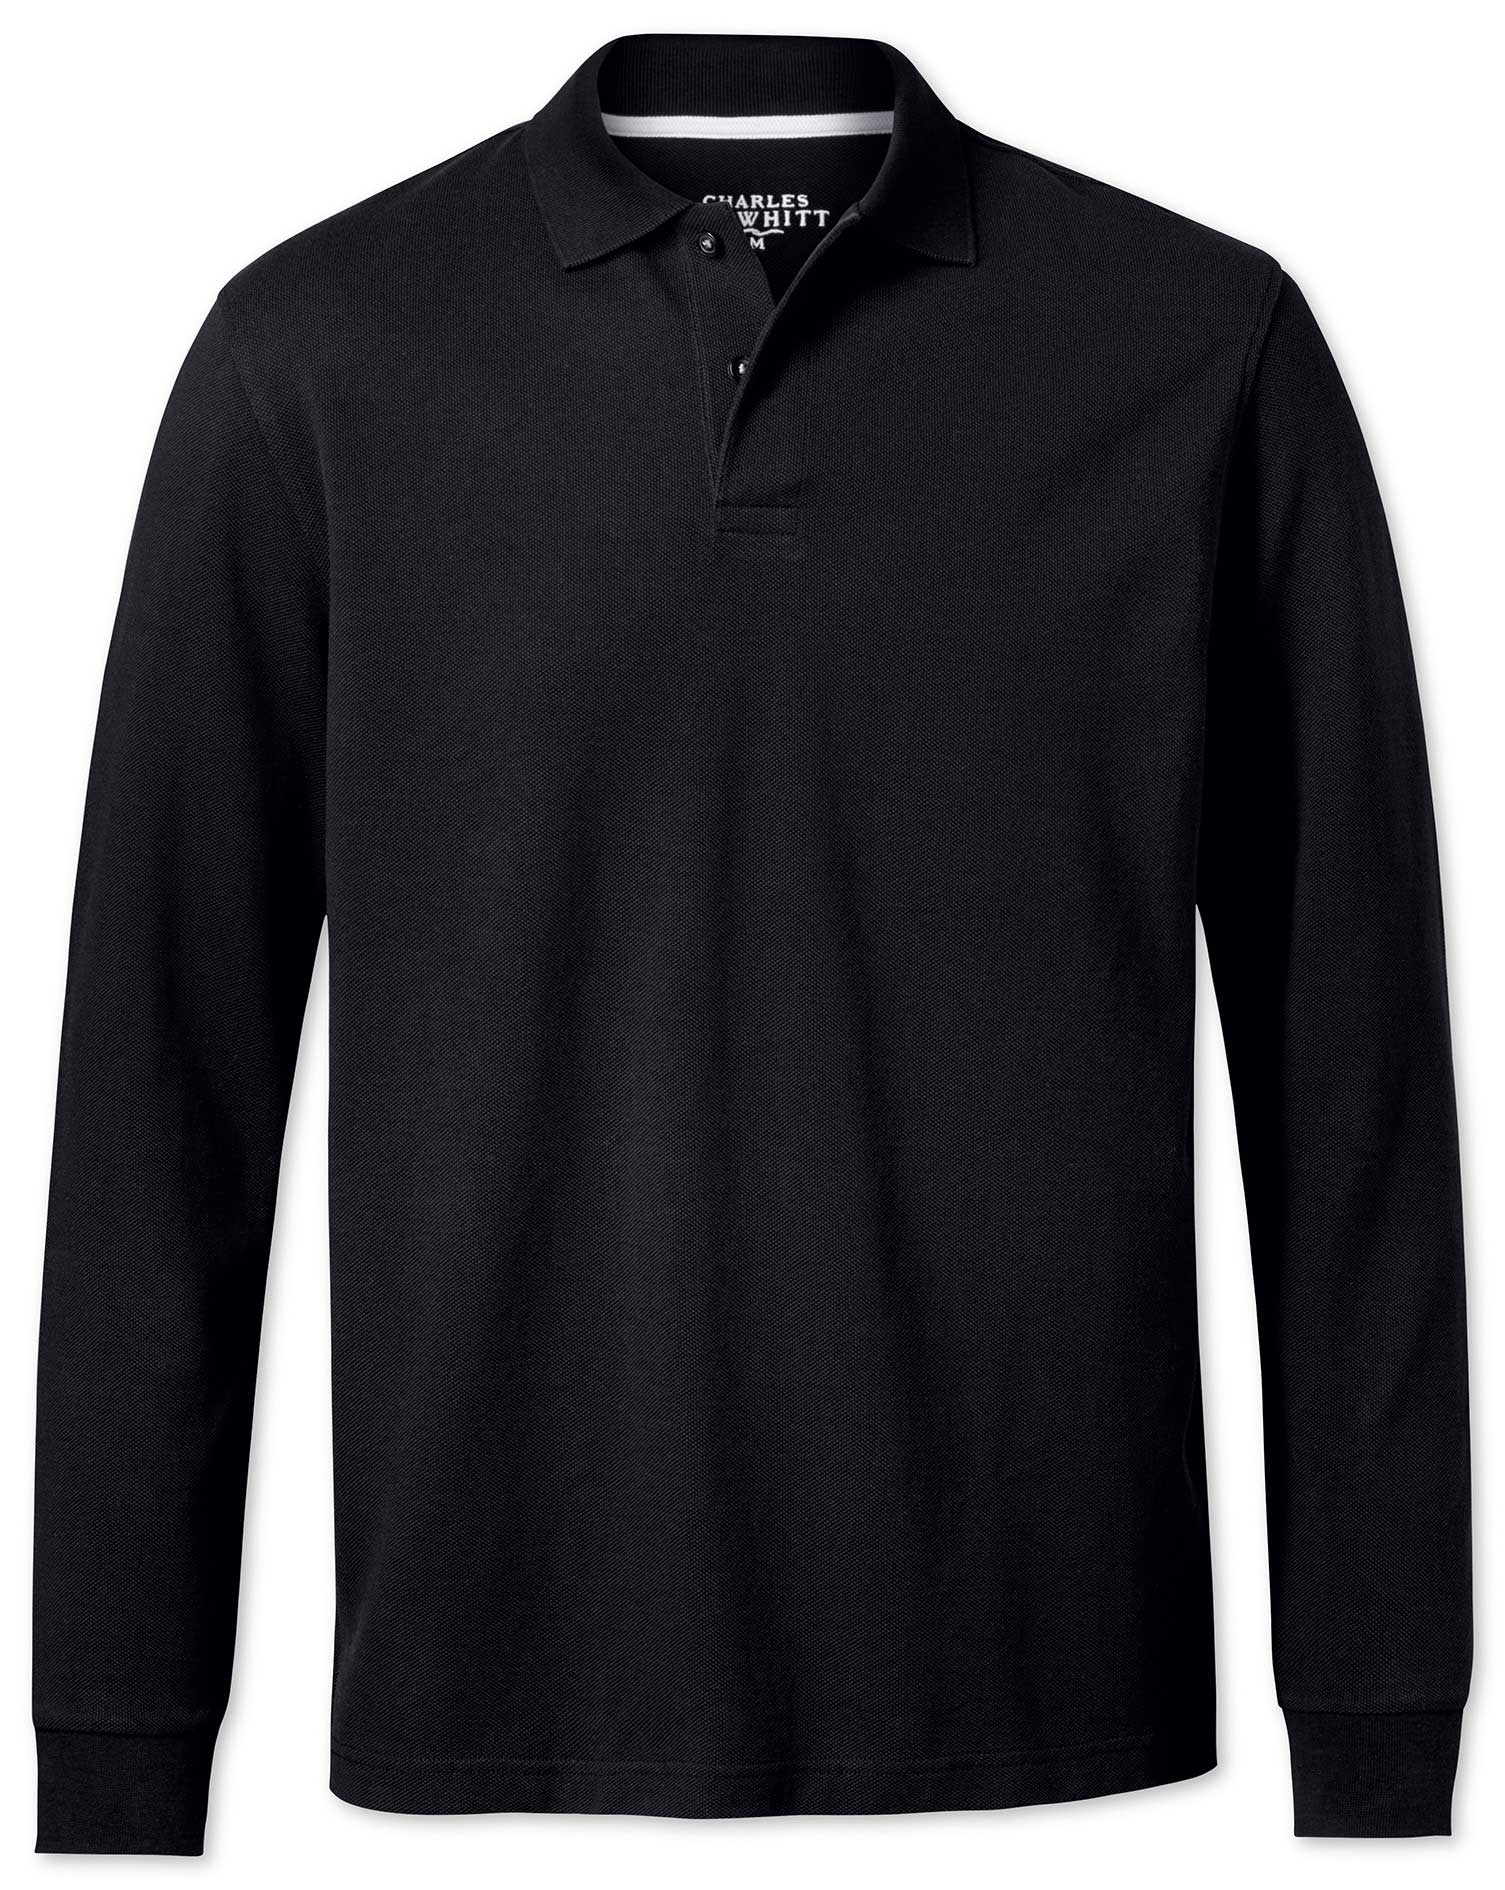 Black Pique Long Sleeve Cotton Polo Size Small by Charles Tyrwhitt